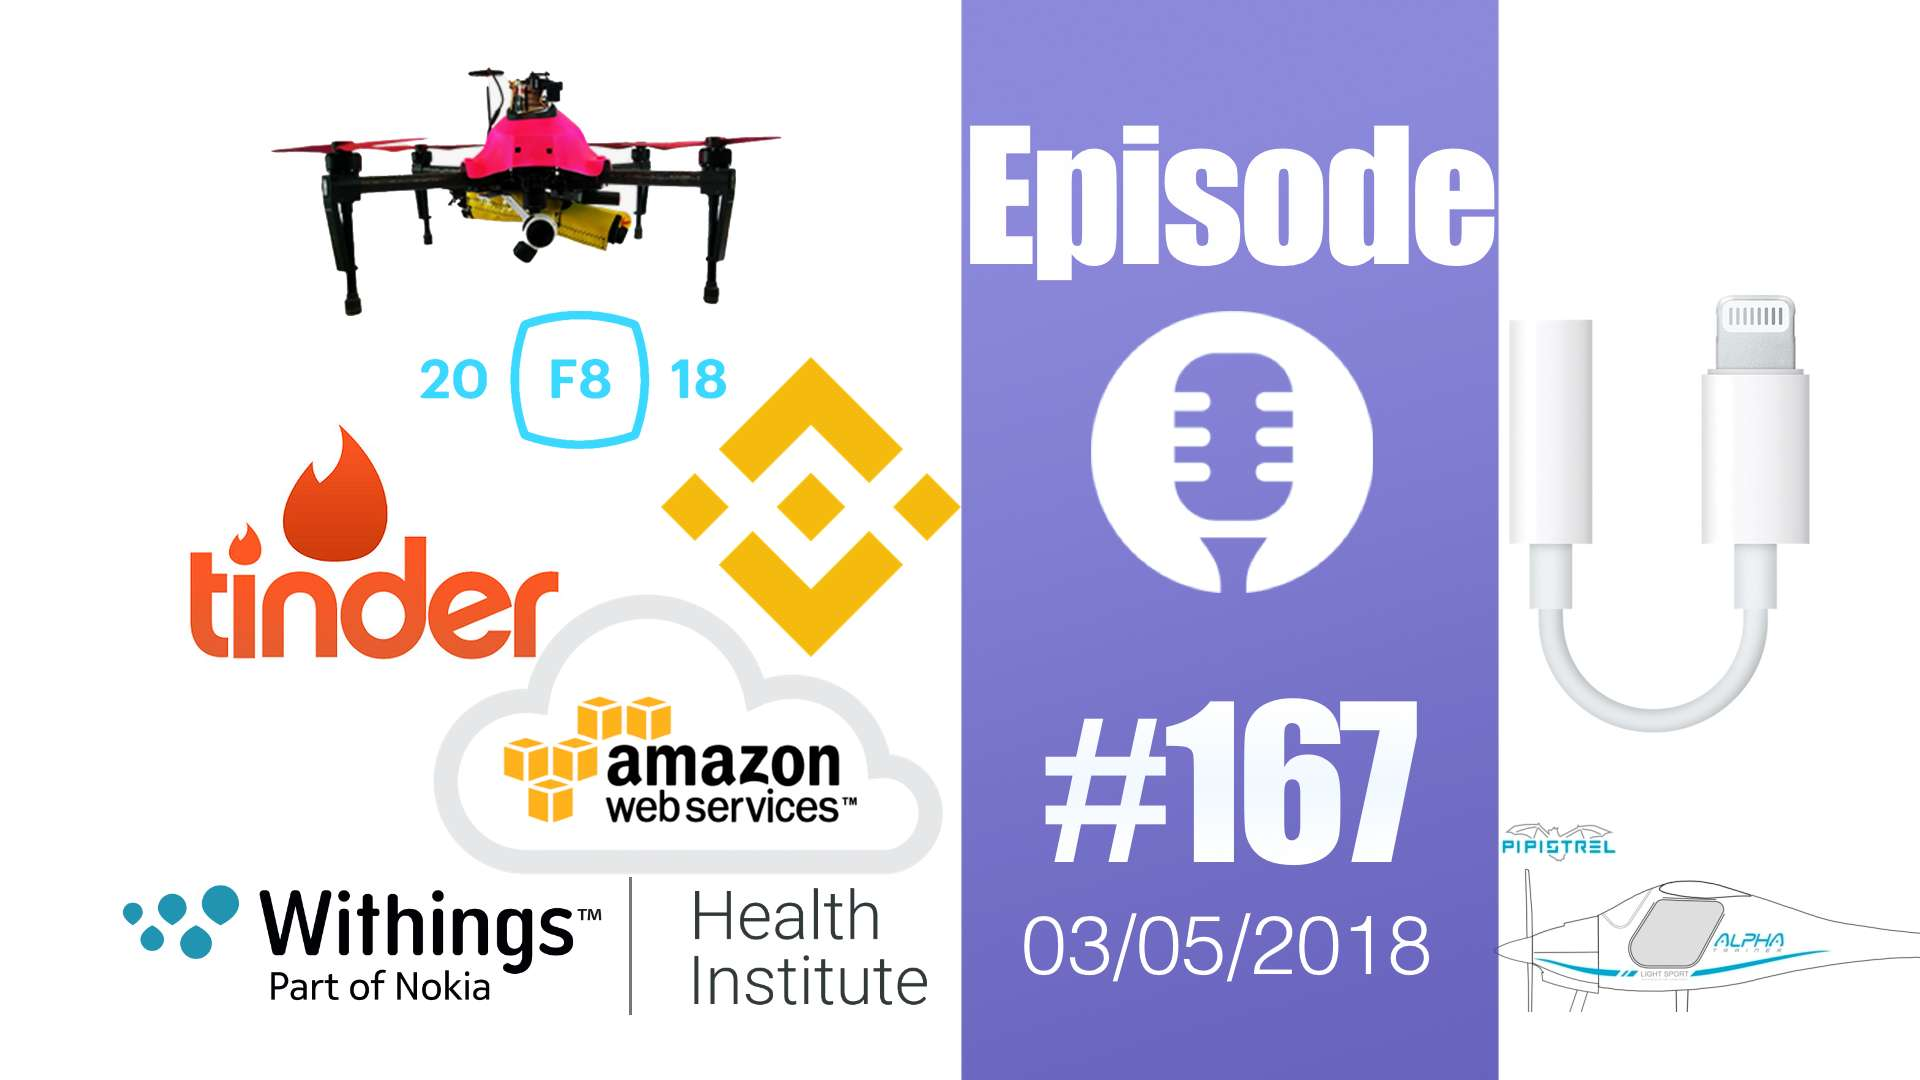 #167: Amazon Vesta, DJI, F8 Facebook, Tinder, Nokia & Withings, Streaming,…